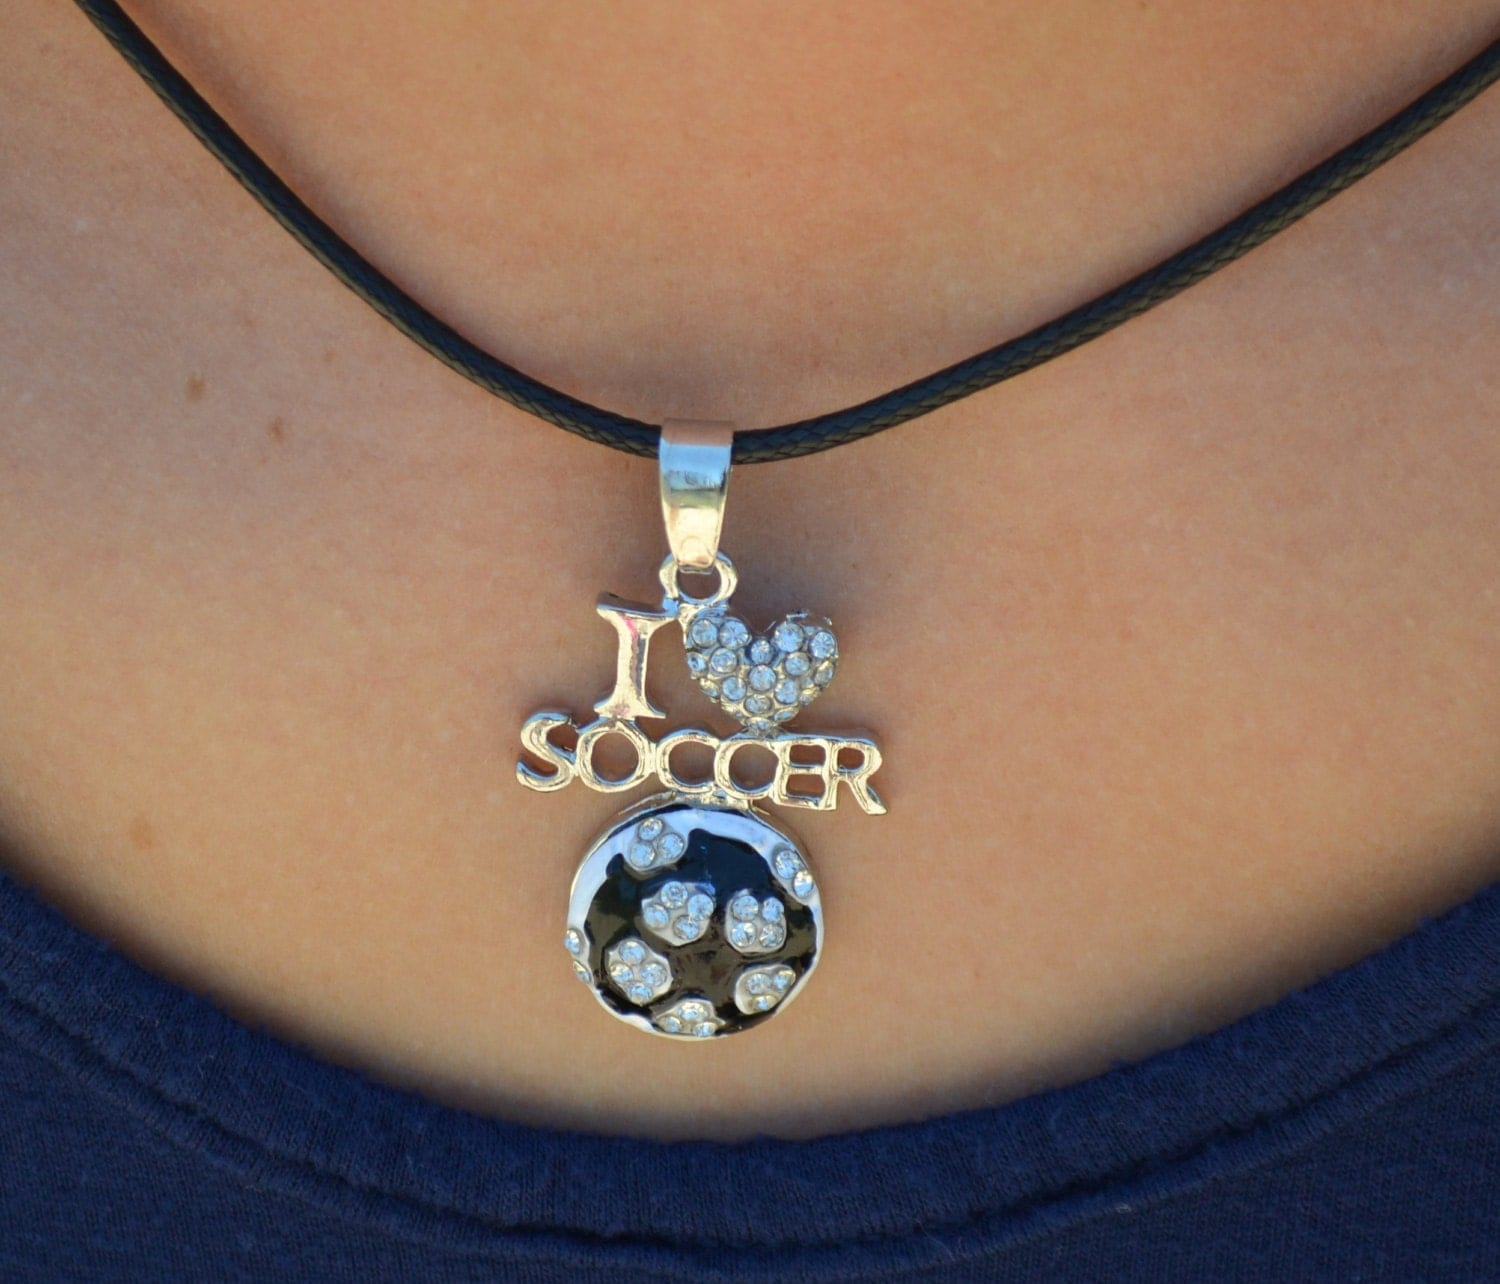 jewelry for soccer jewelry for soccer team gifts soccer necklace i 5336